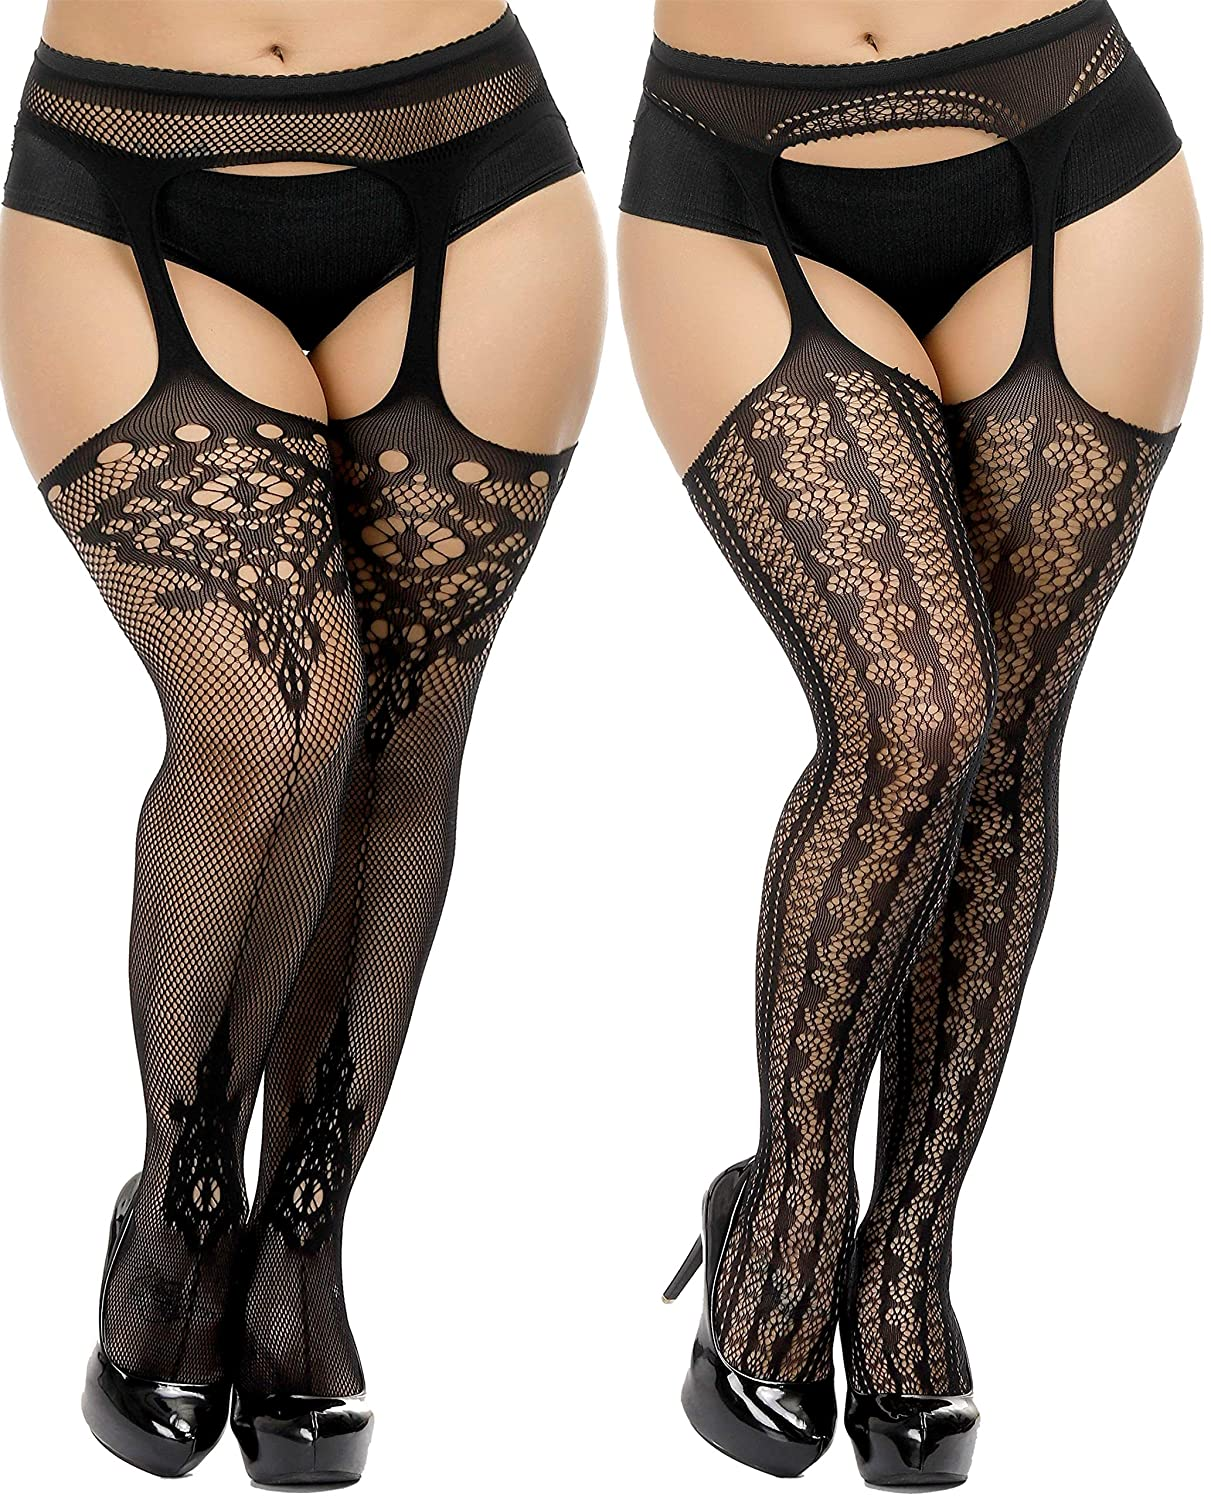 Steampunk Plus Size Clothing & Costumes TGD Womens Fishnet Stockings Plus Size Tights Suspender Pantyhose Thigh High Stockings 2 Pairs  AT vintagedancer.com